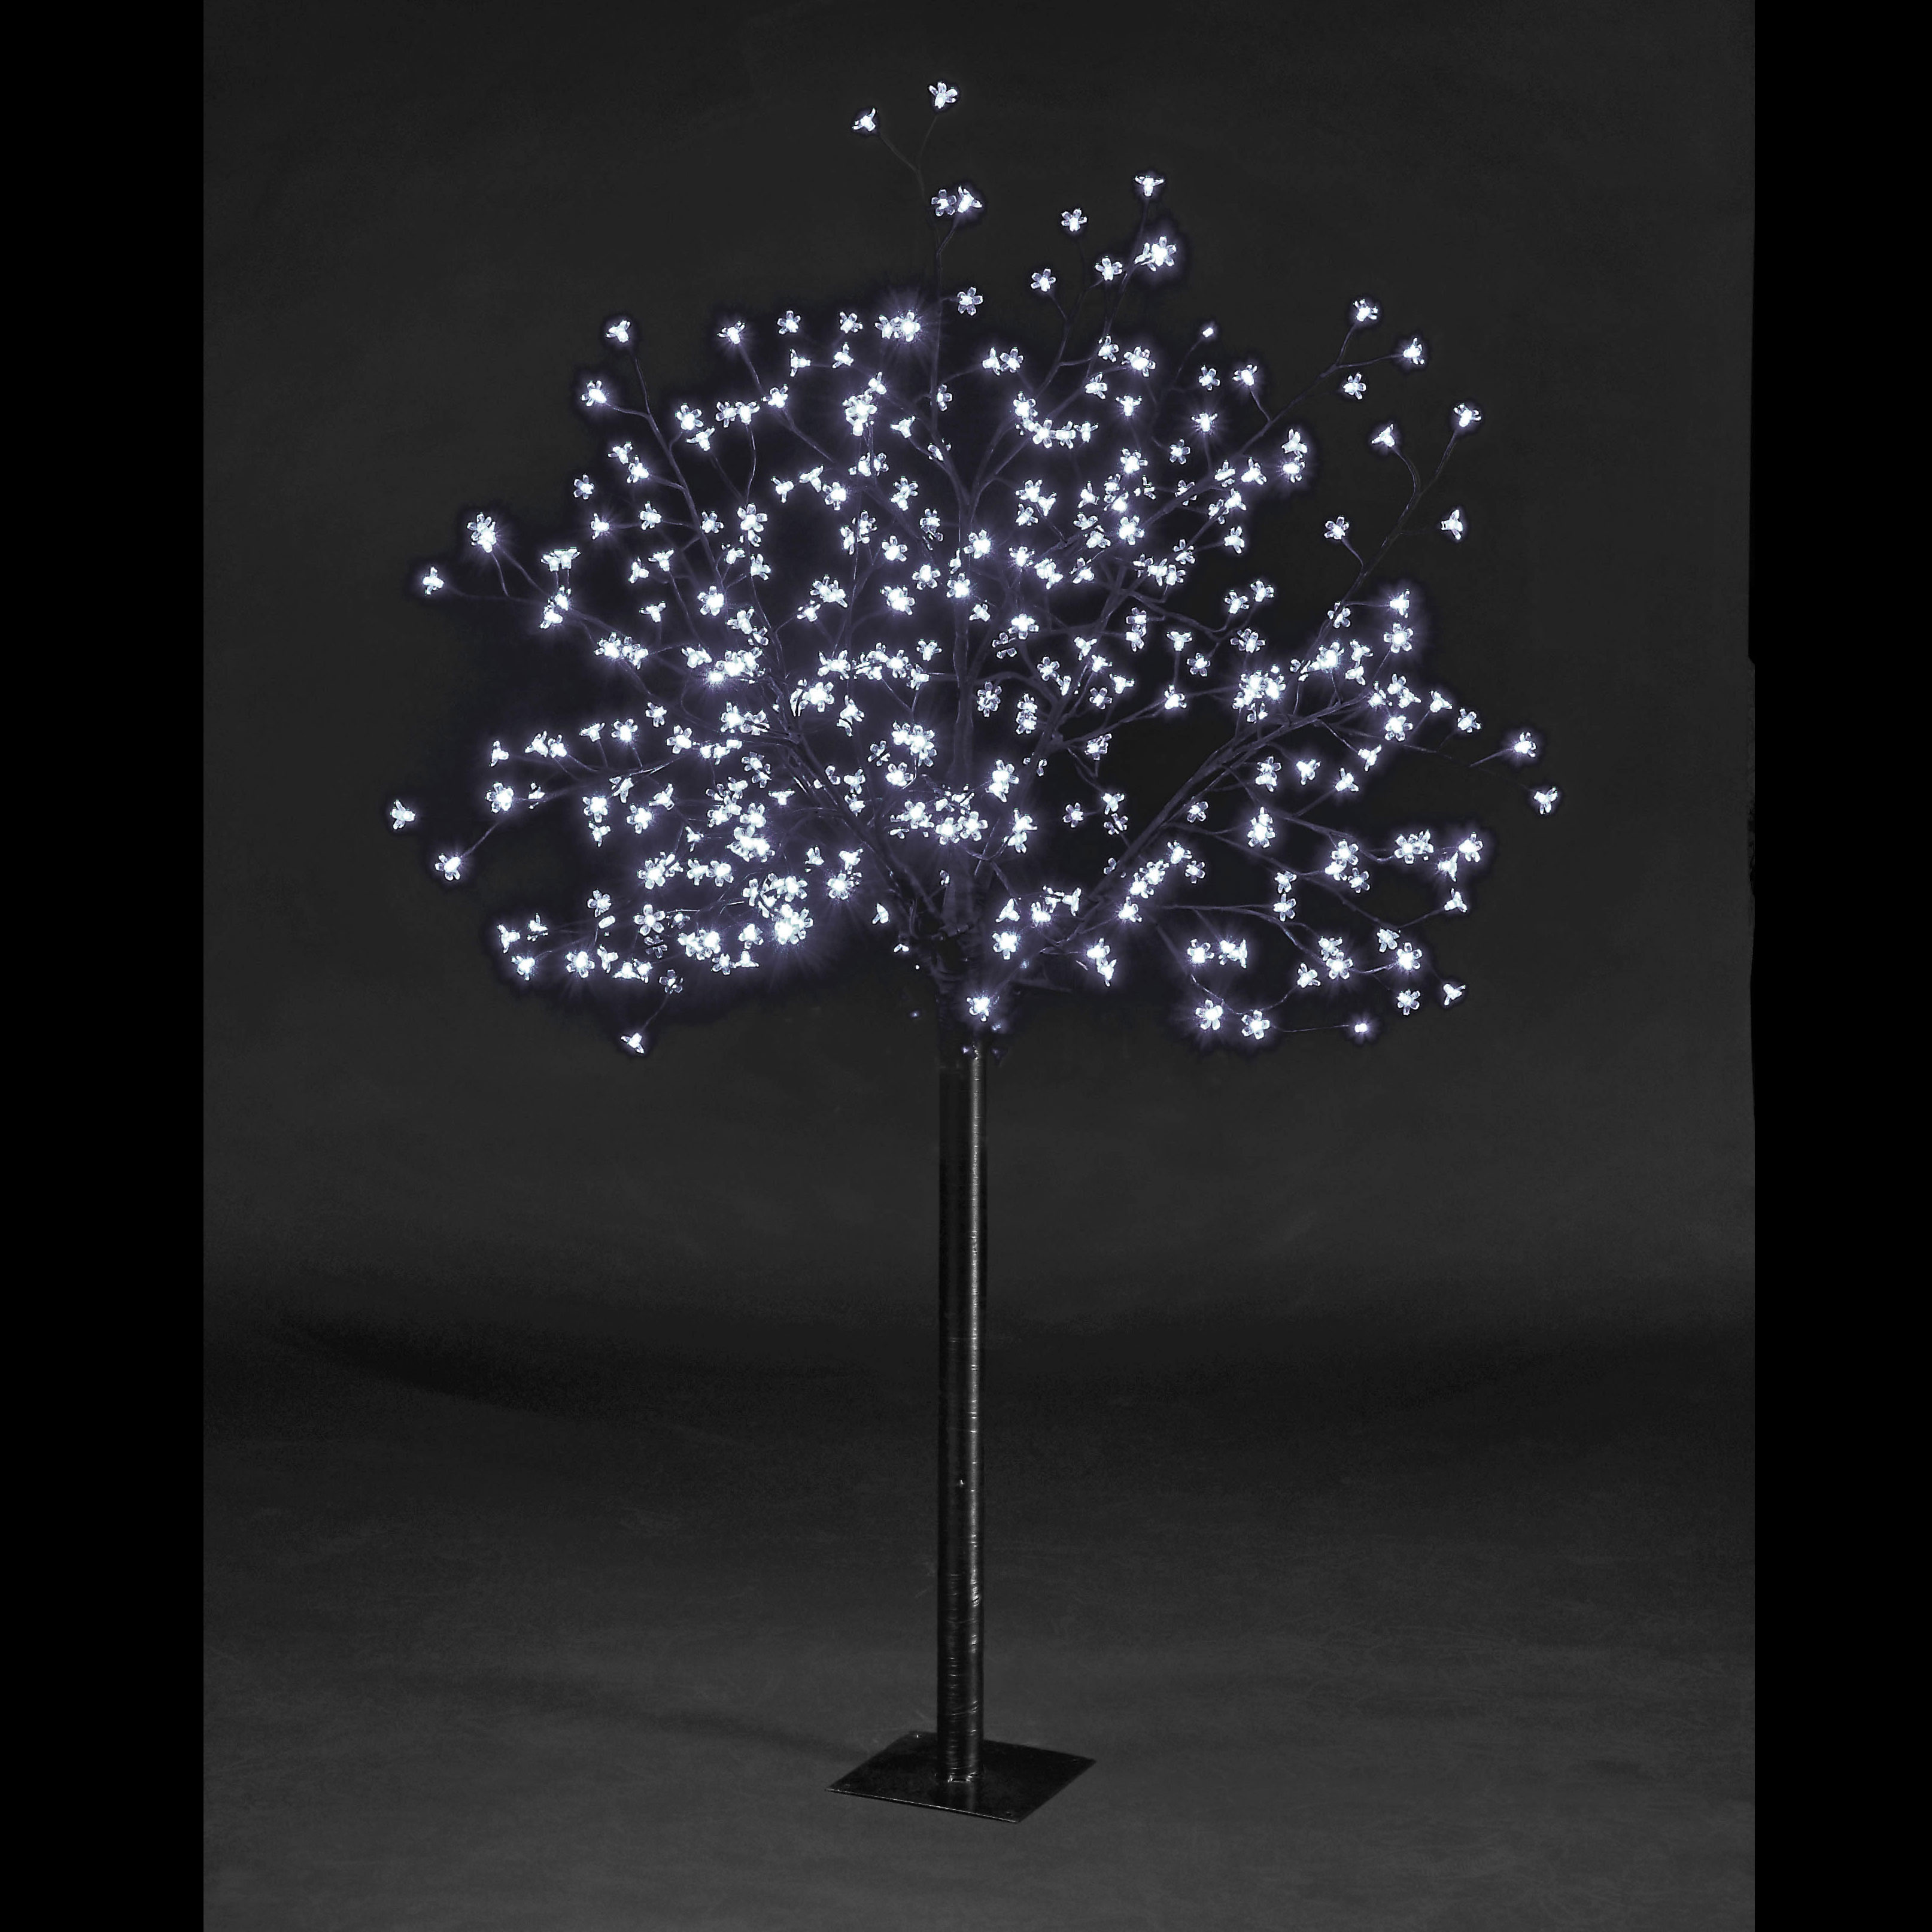 6ft Cherry Blossom Tree with 250 Ice White LEDs